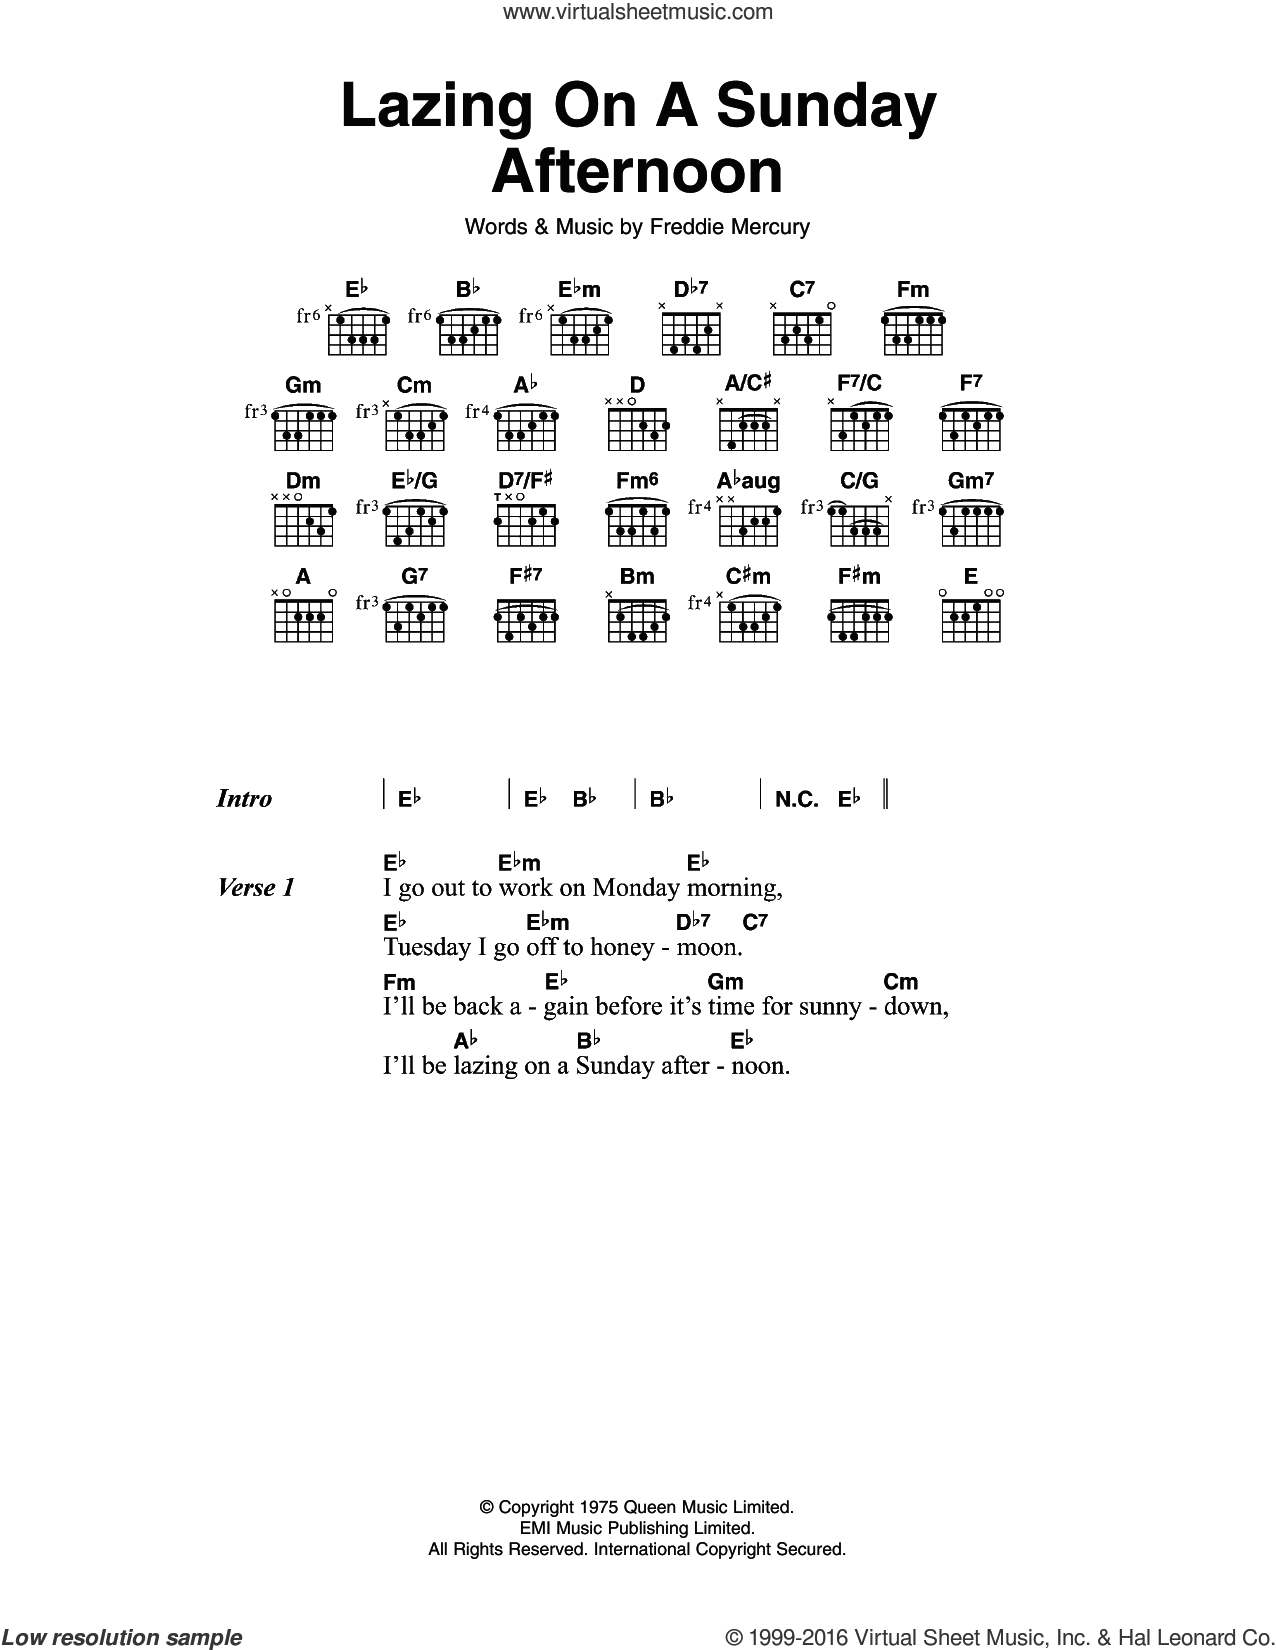 Lazing On A Sunday Afternoon sheet music for guitar (chords) by Frederick Mercury and Queen. Score Image Preview.